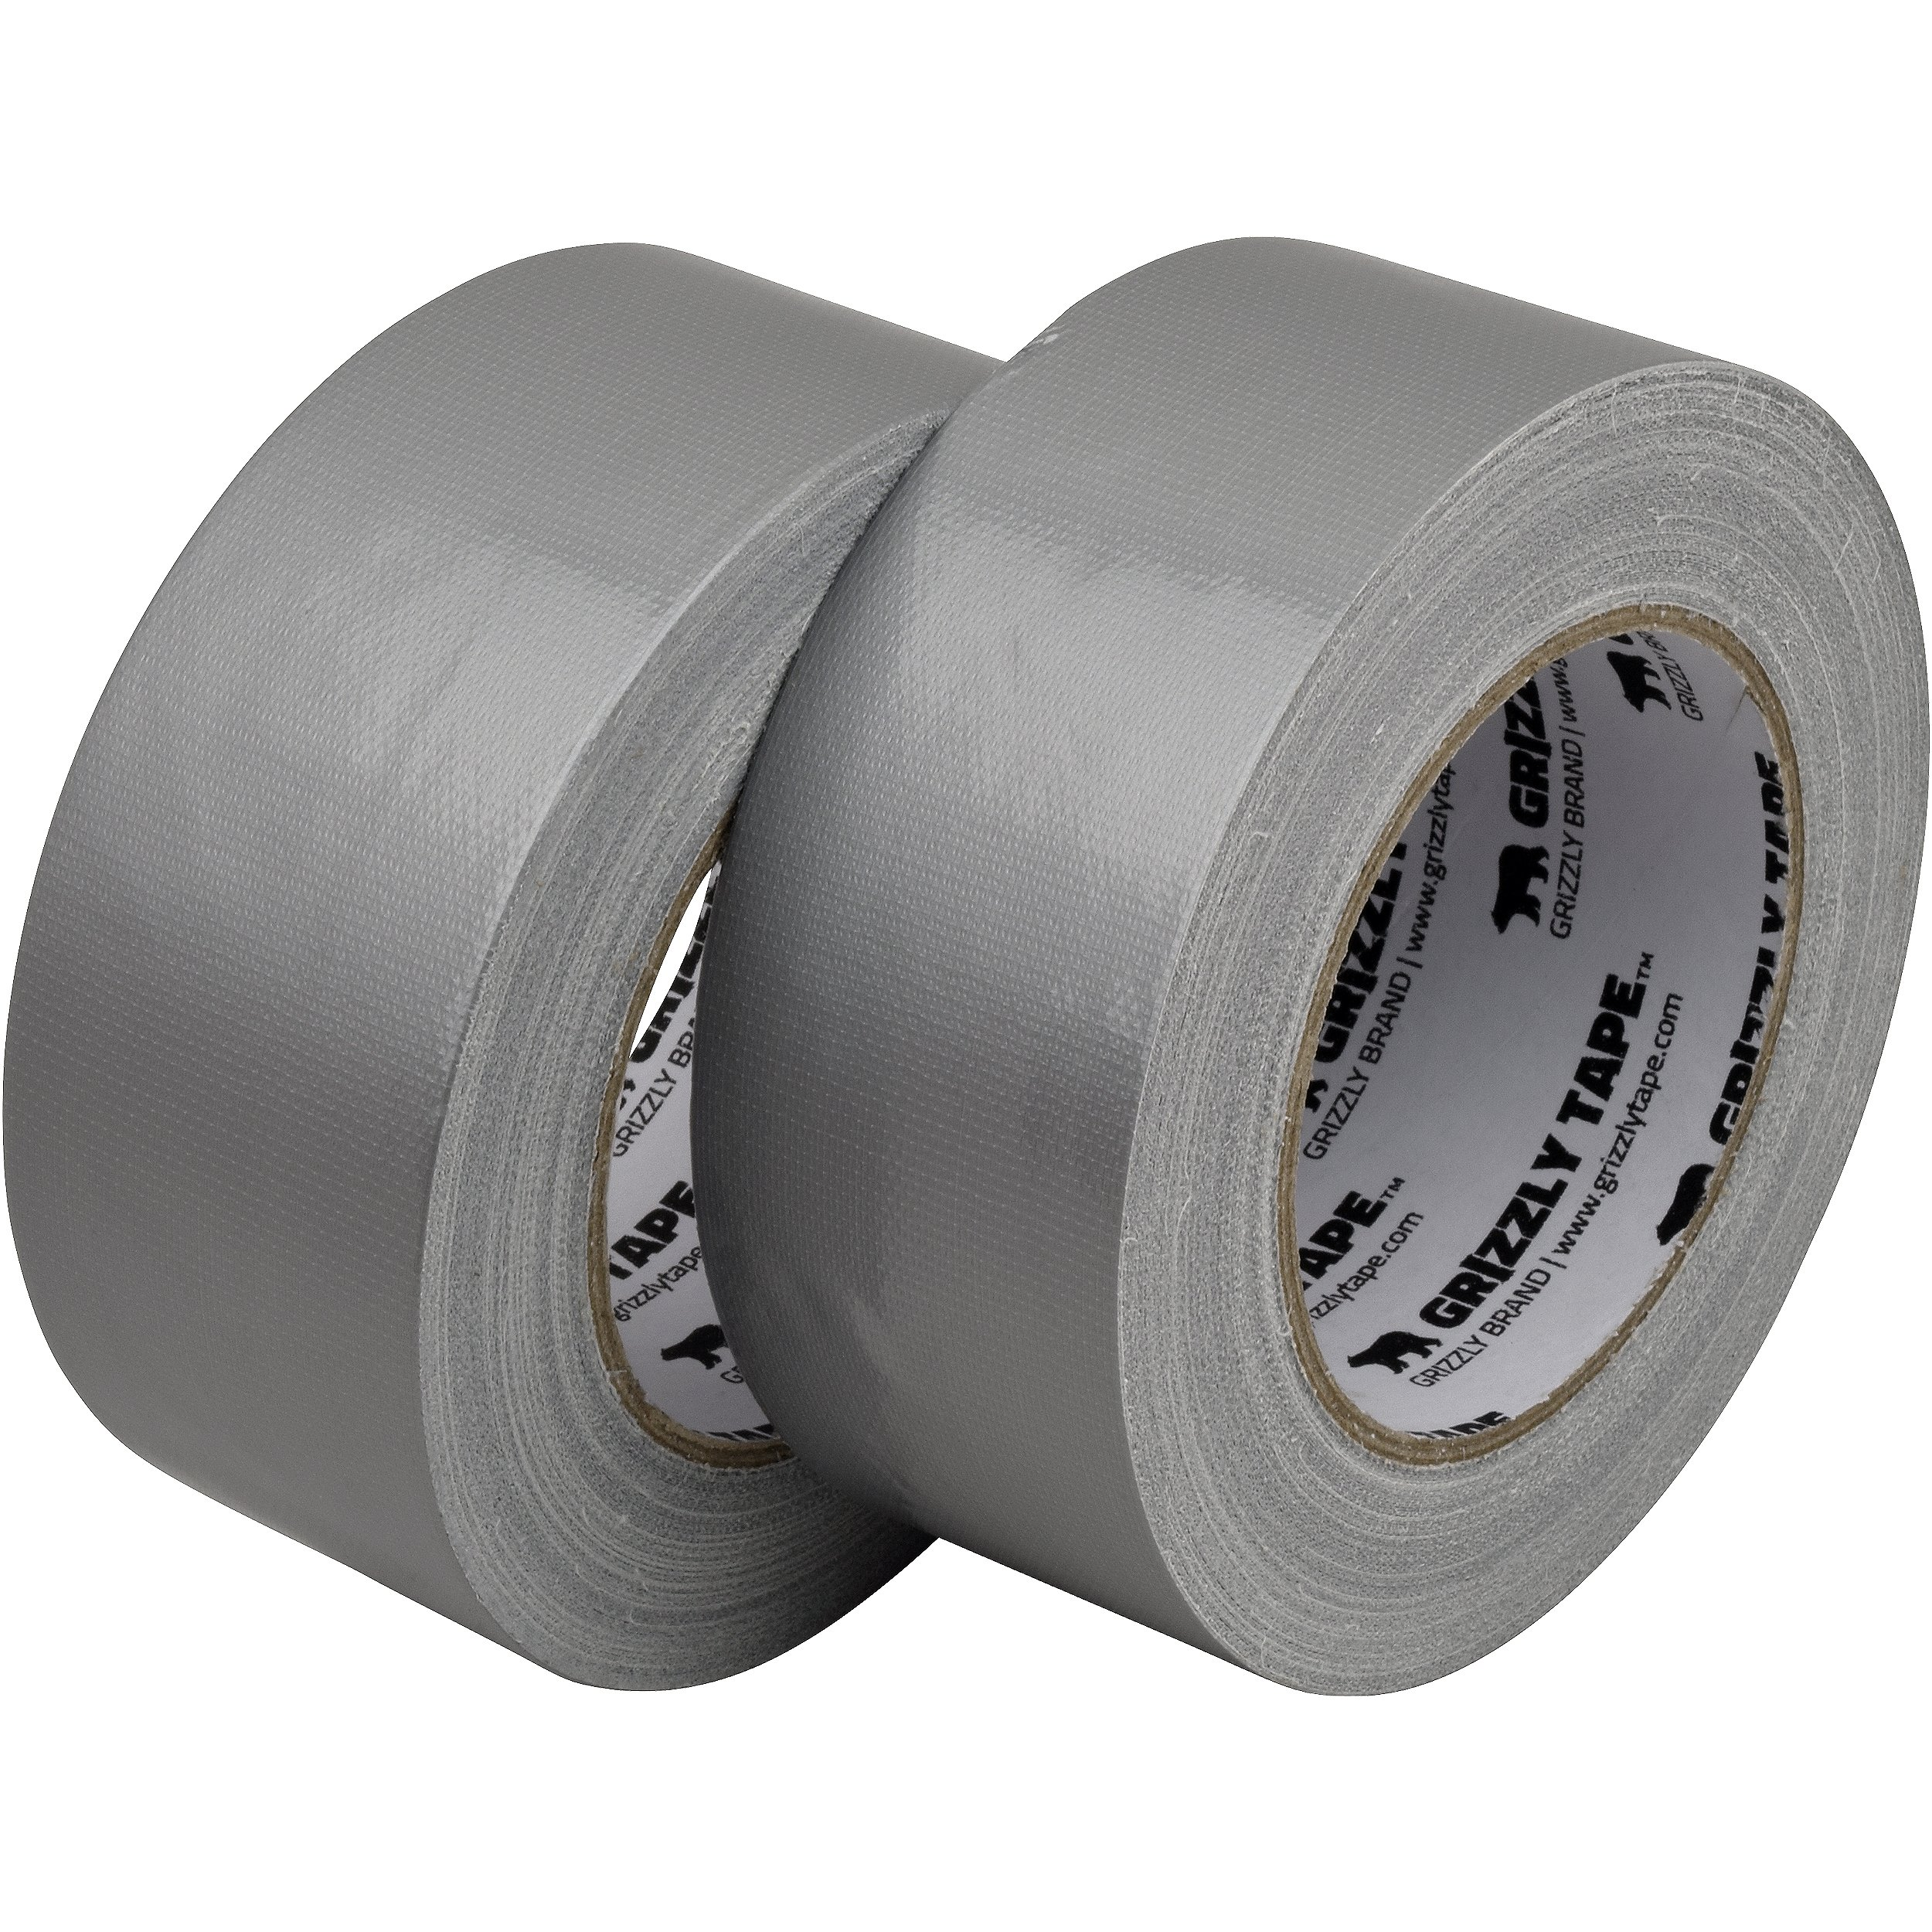 Grizzly Brand Professional Grade Duct Tape, Silver Color Multi Pack, 11mil Thick (1.88 inch x 30 Yards), 48mm x 28m, 2-Pack Rolls